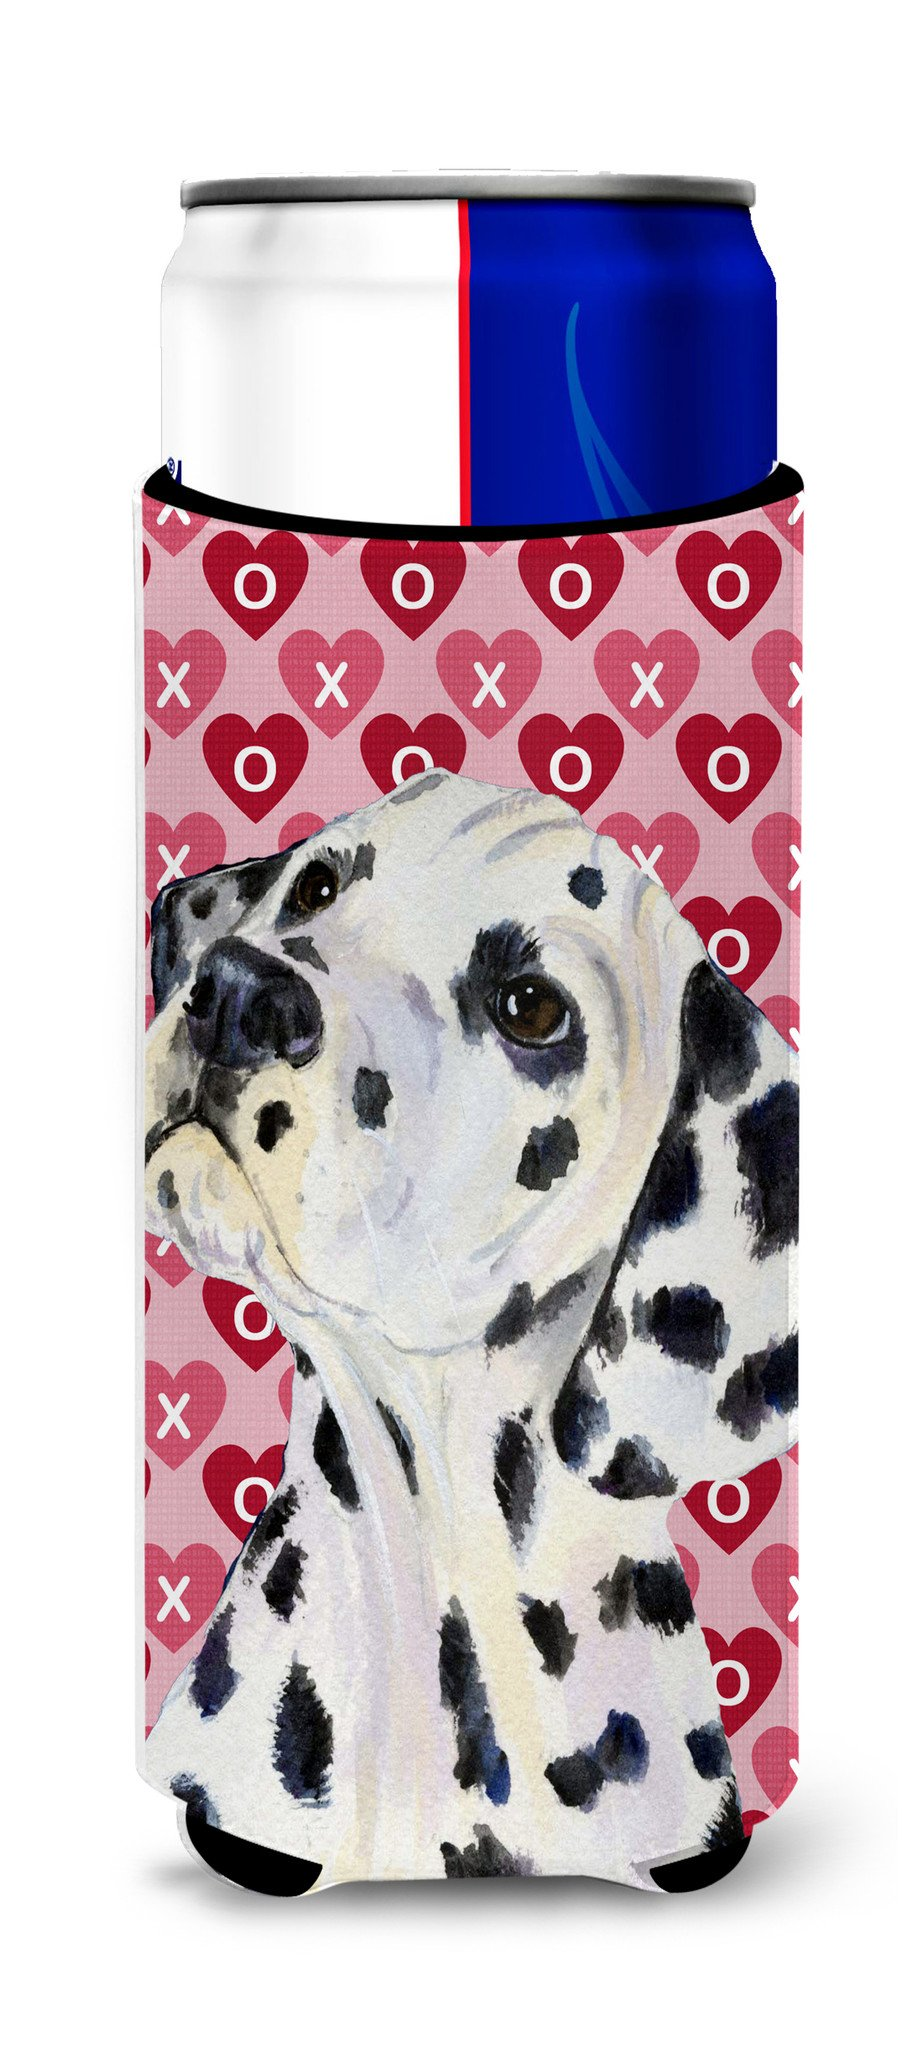 Dalmatian Hearts Love and Valentine's Day Portrait Ultra Beverage Insulators for slim cans SS4492MUK by Caroline's Treasures